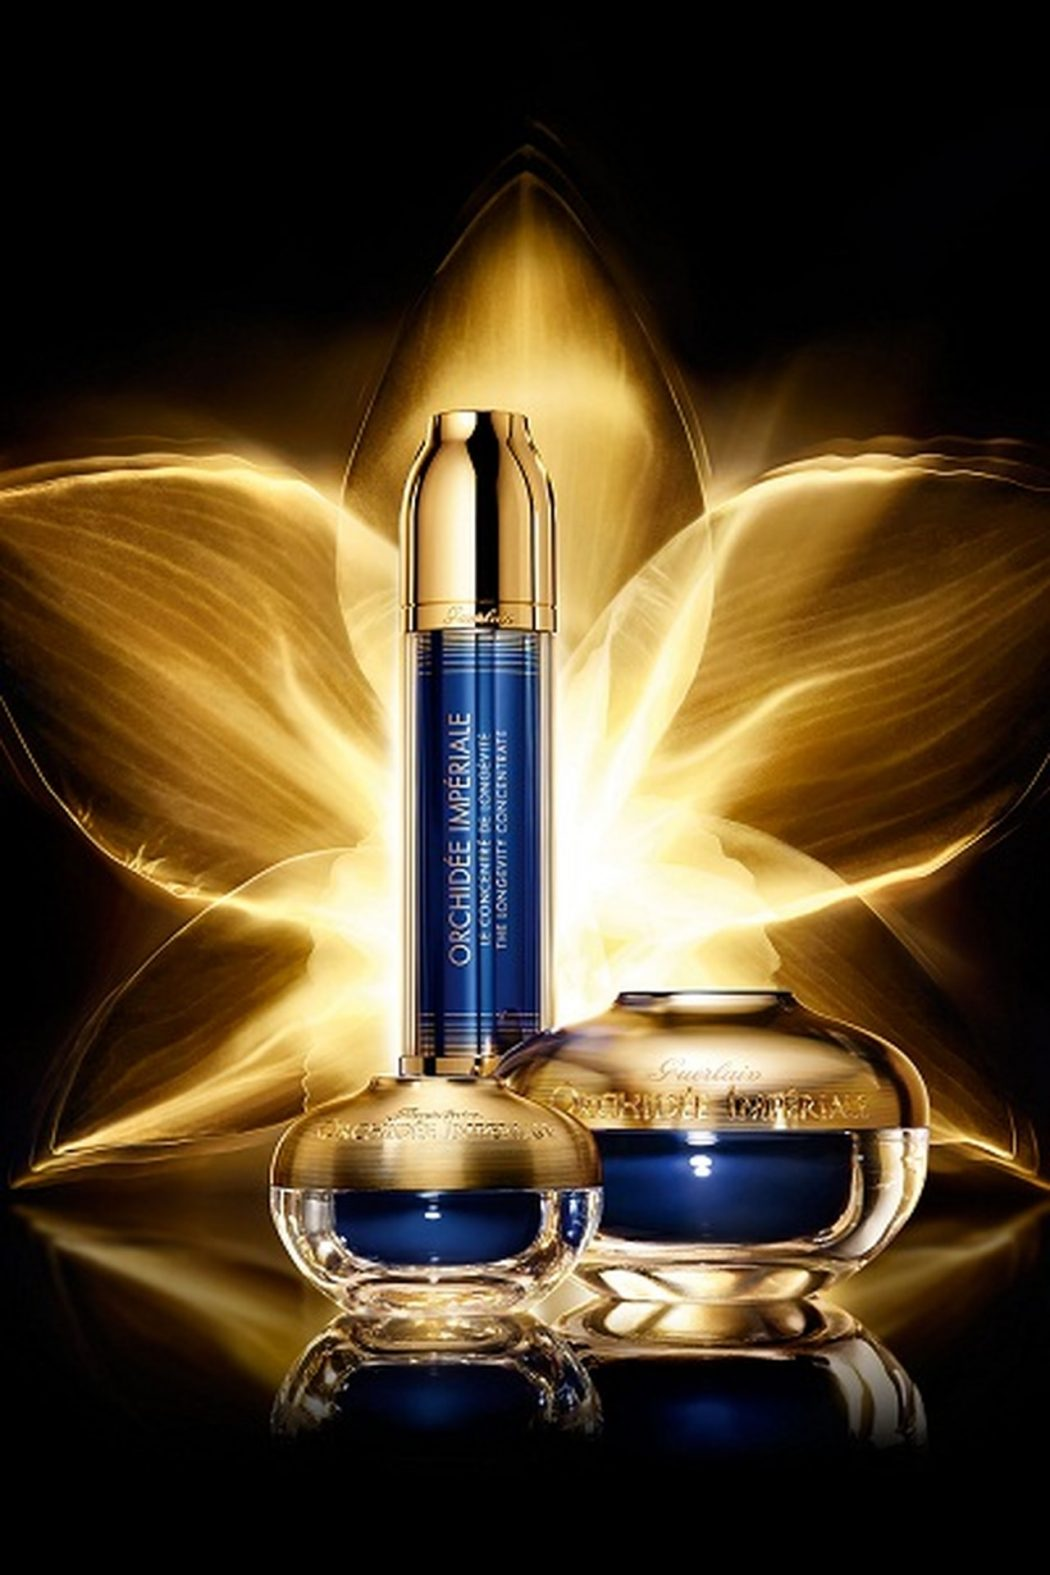 Orchidée-Impériale-Guerlain1 Top 5 Most Expensive Face Creams in 2018